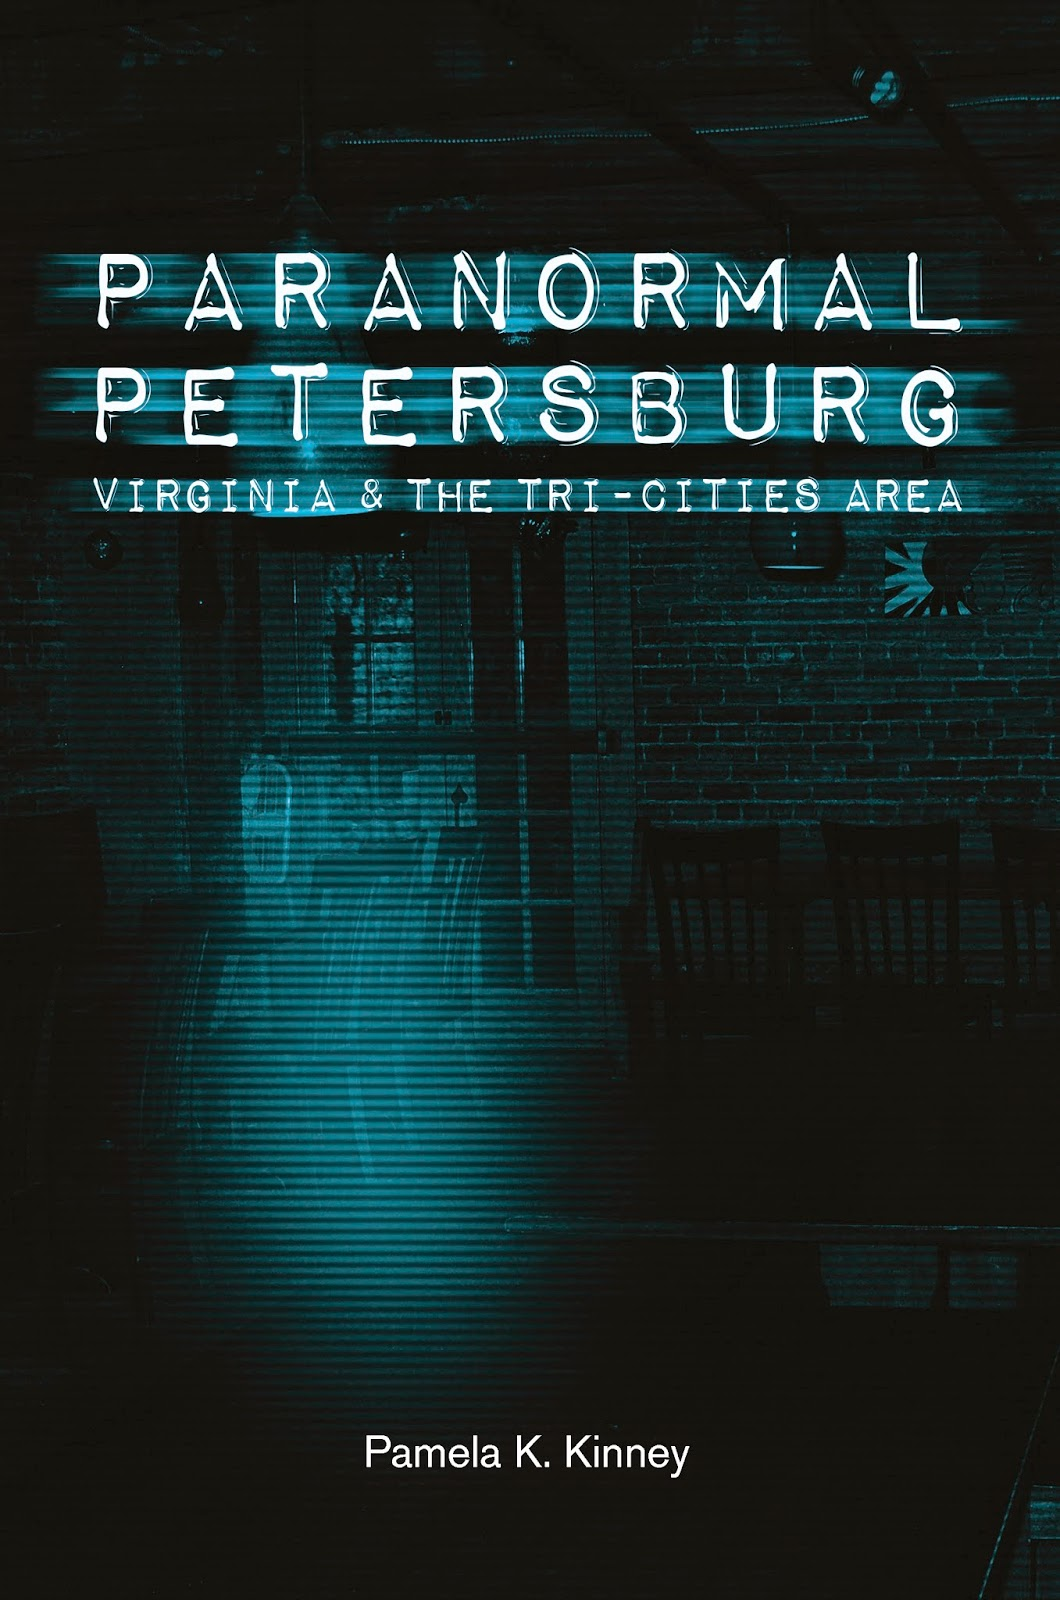 Find Them In My Haunted Richmond, Virginia And Haunted Richmond Ii Find  Out A Lot More About Parker's Battery In Paranormal Petersburg, Virginia,